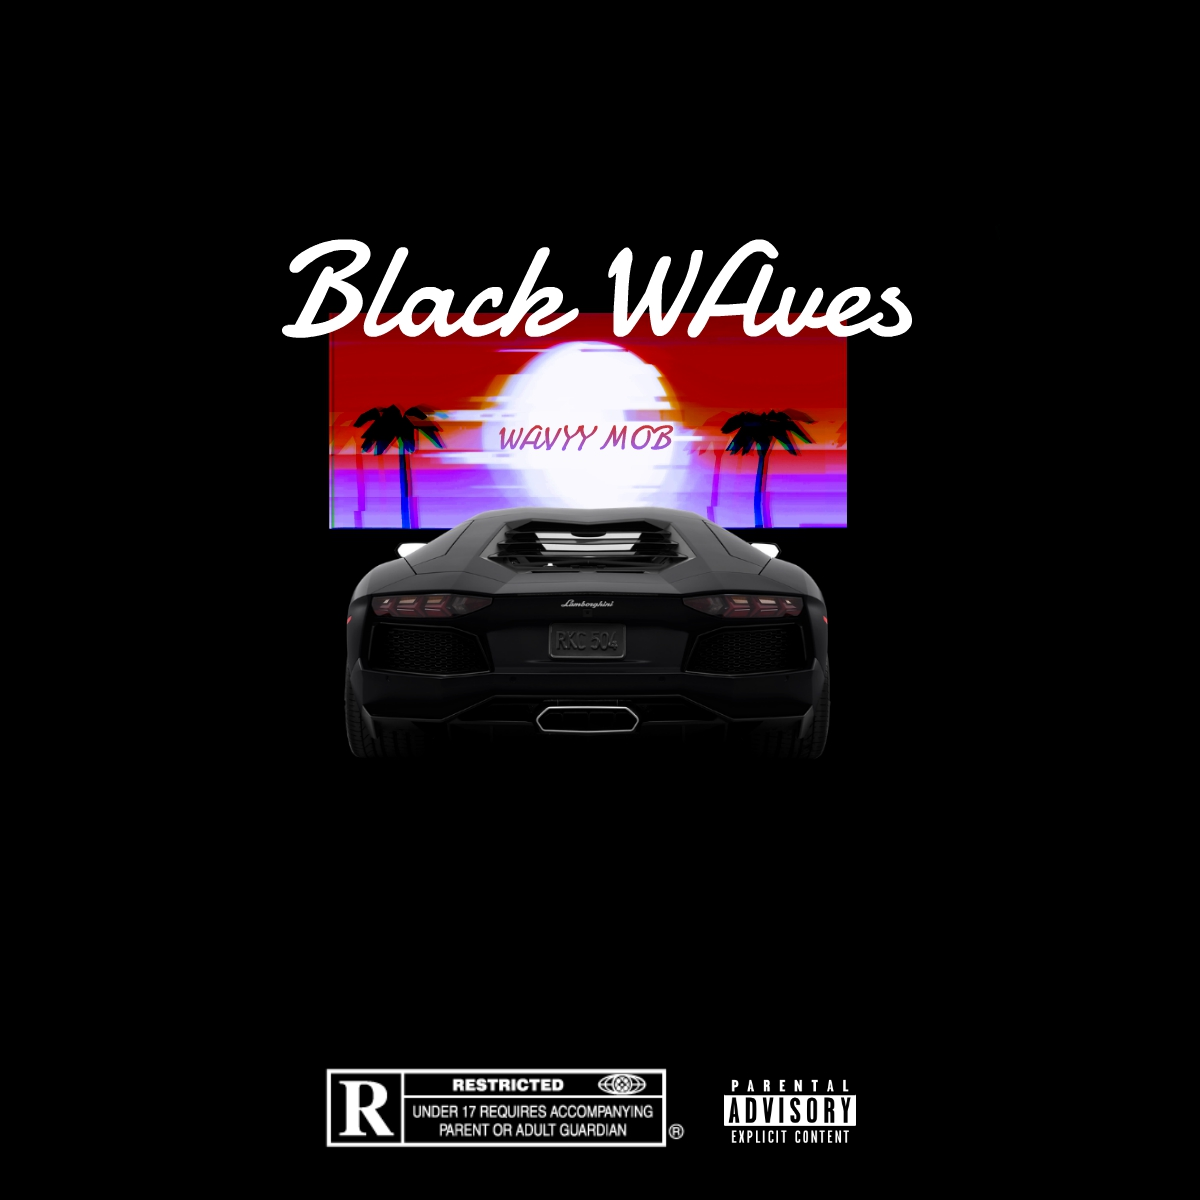 Wavyy Mob - Black Waves